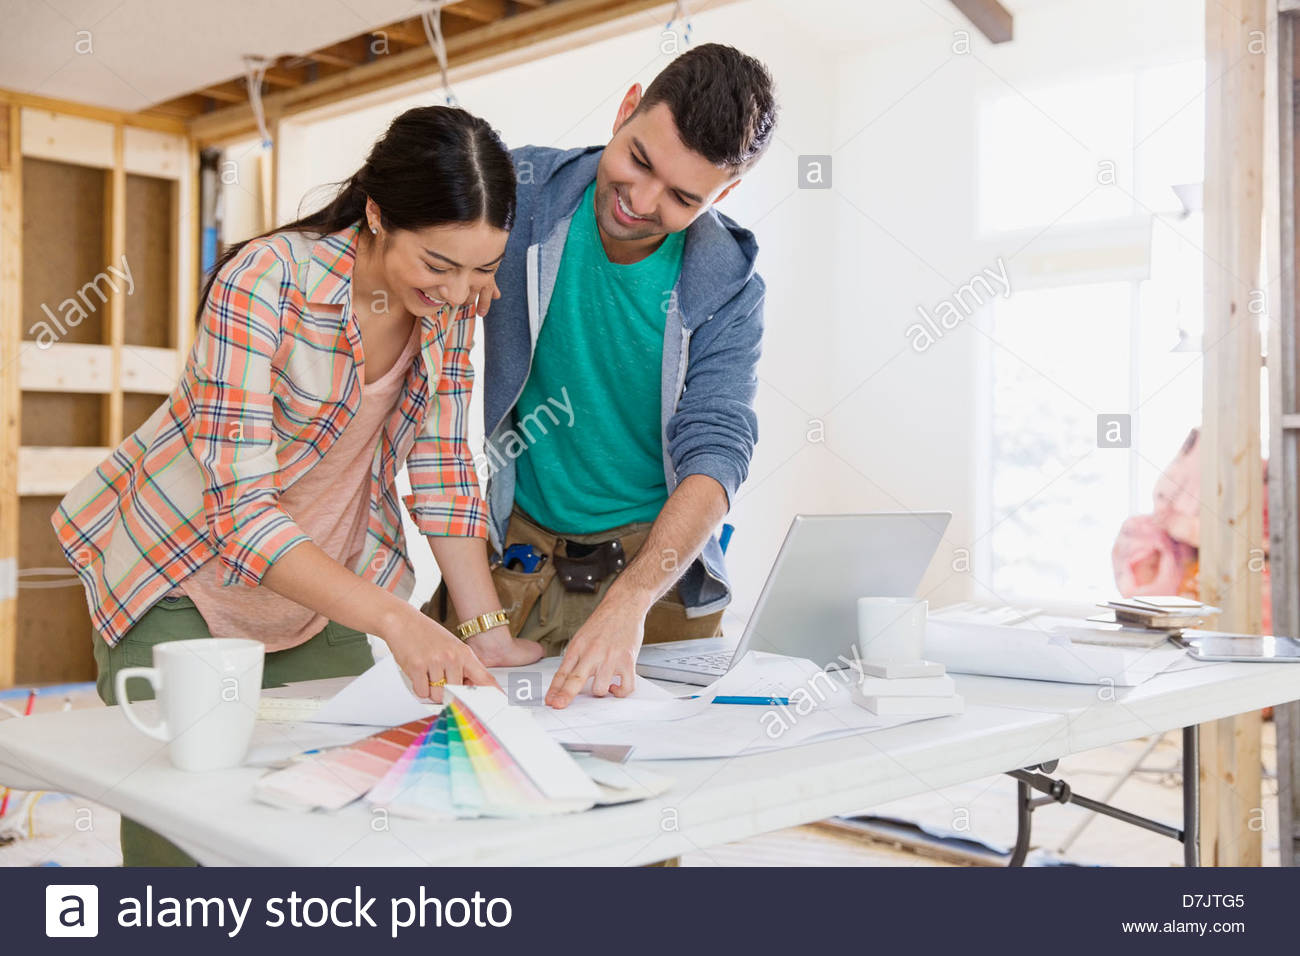 Couple discussing home designs in kitchen - Stock Image